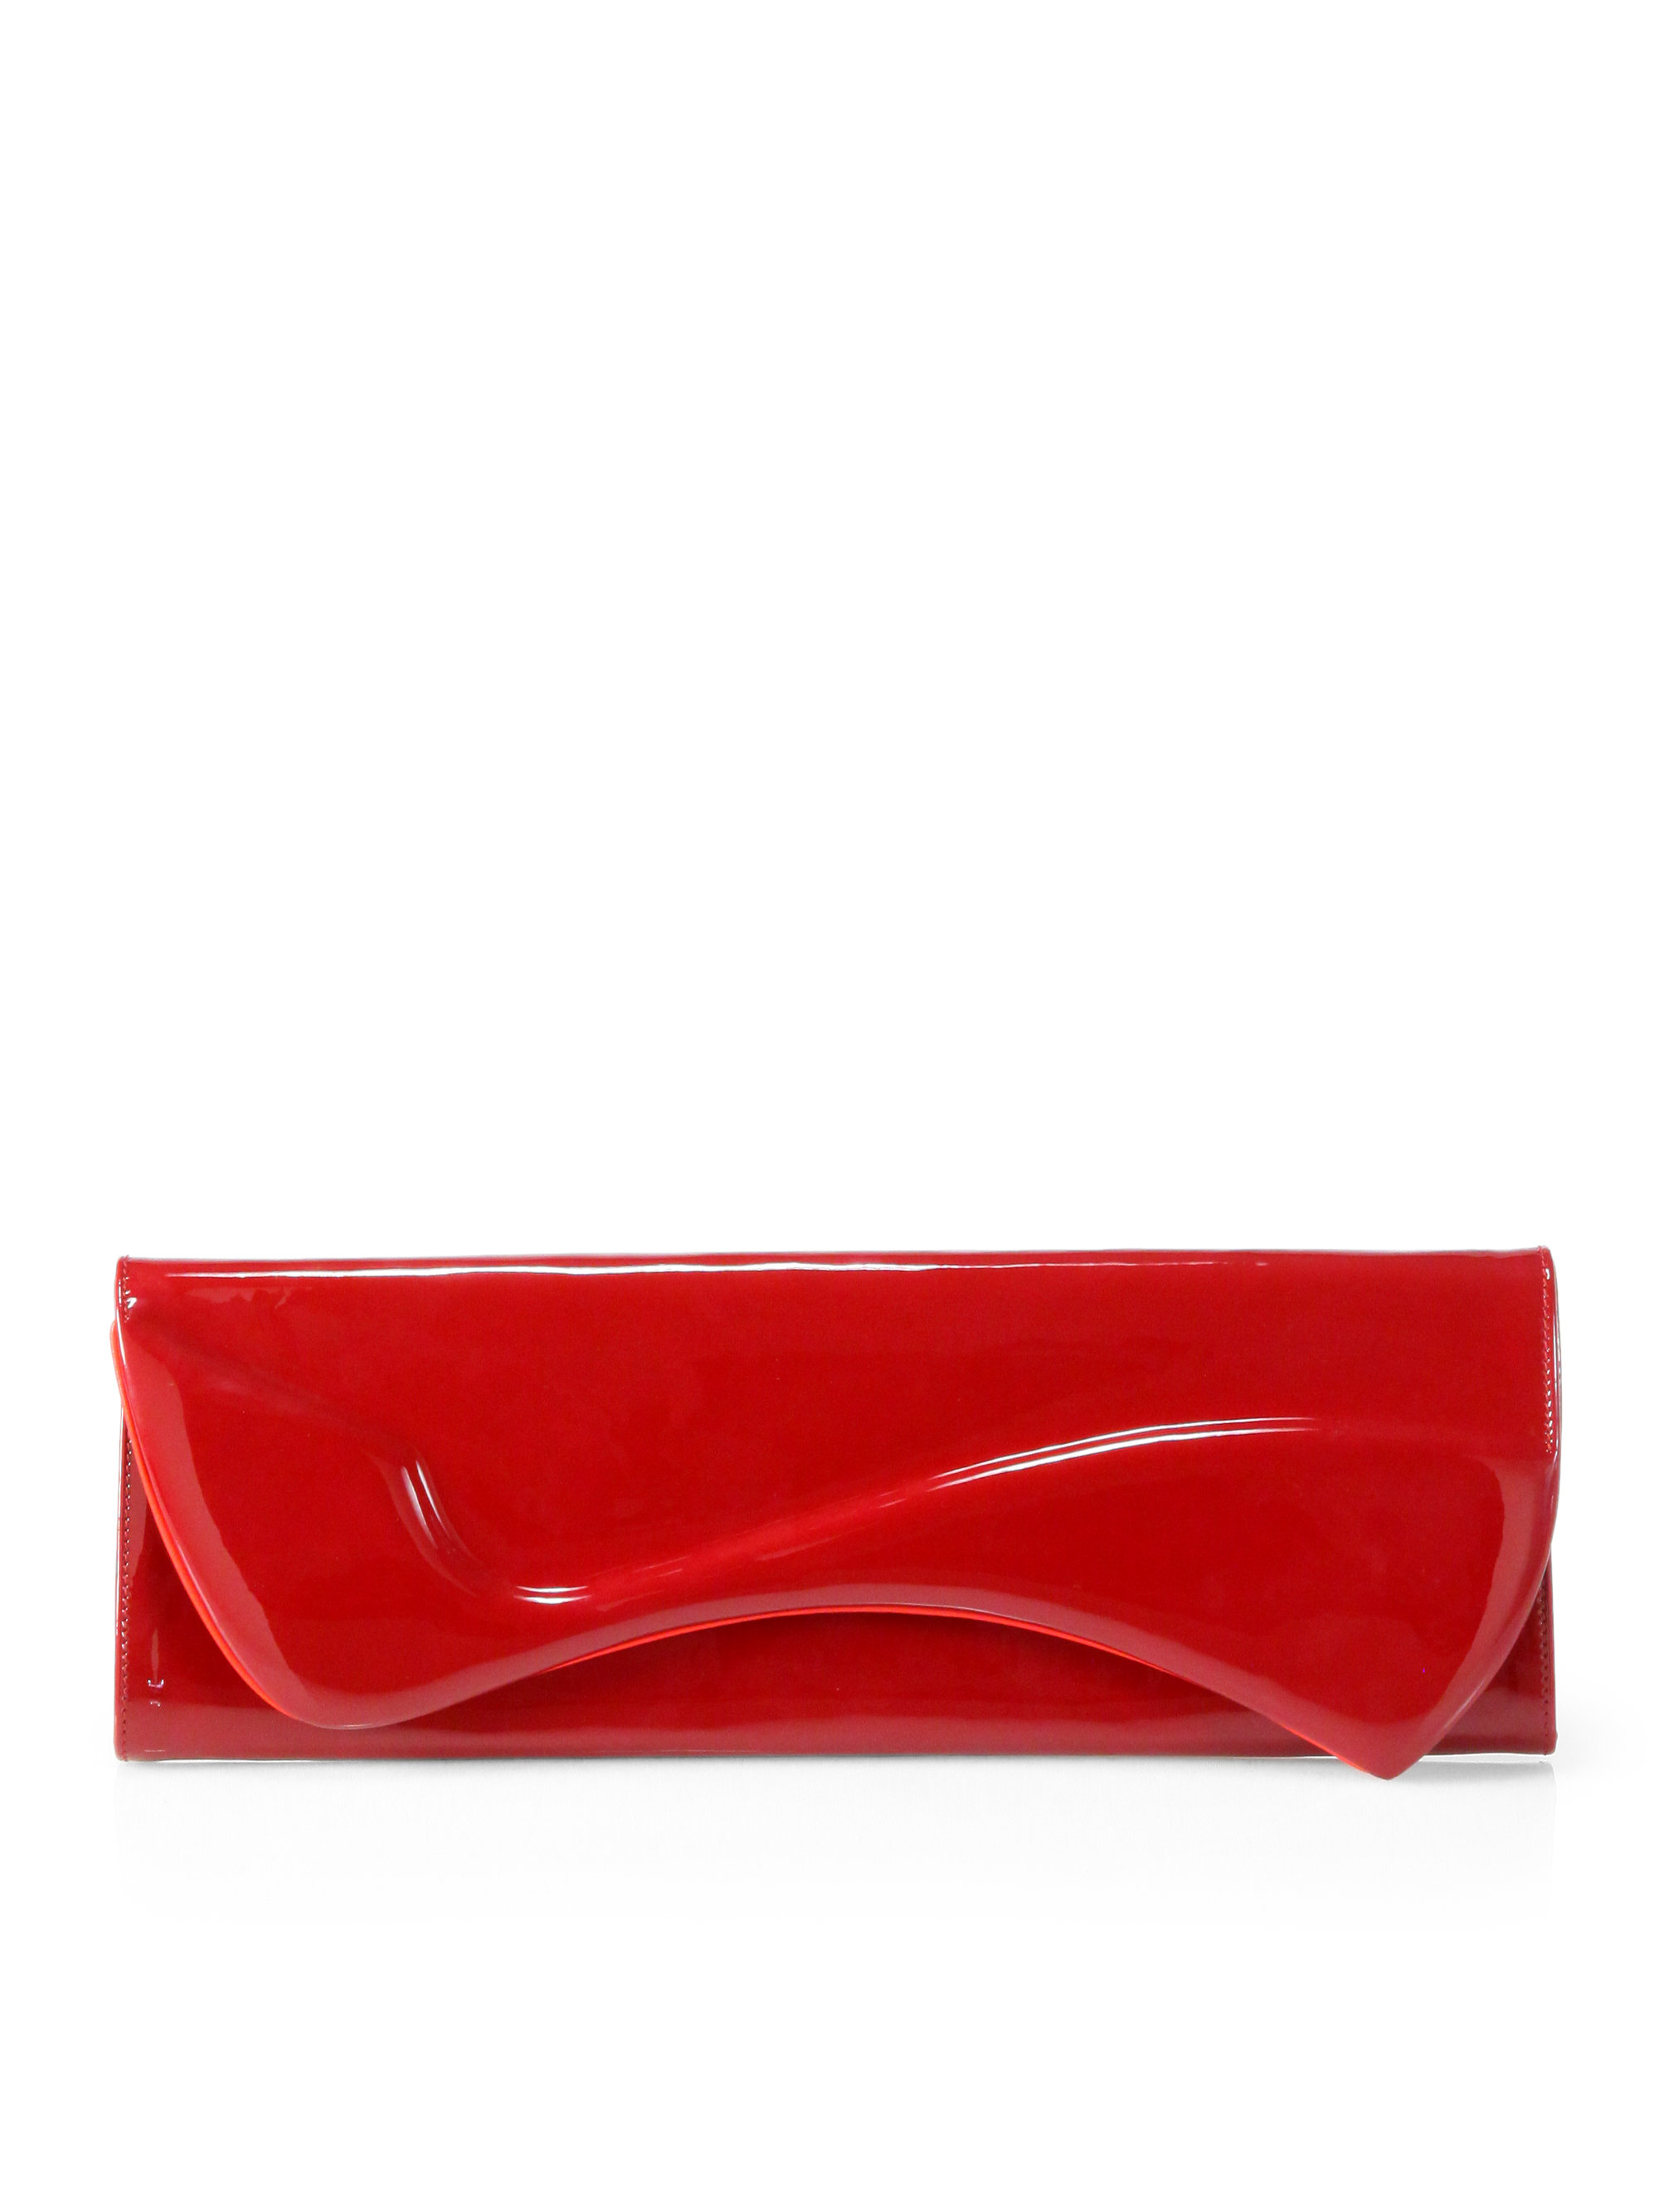 Christian louboutin Pigalle Patent Leather Clutch in Red | Lyst